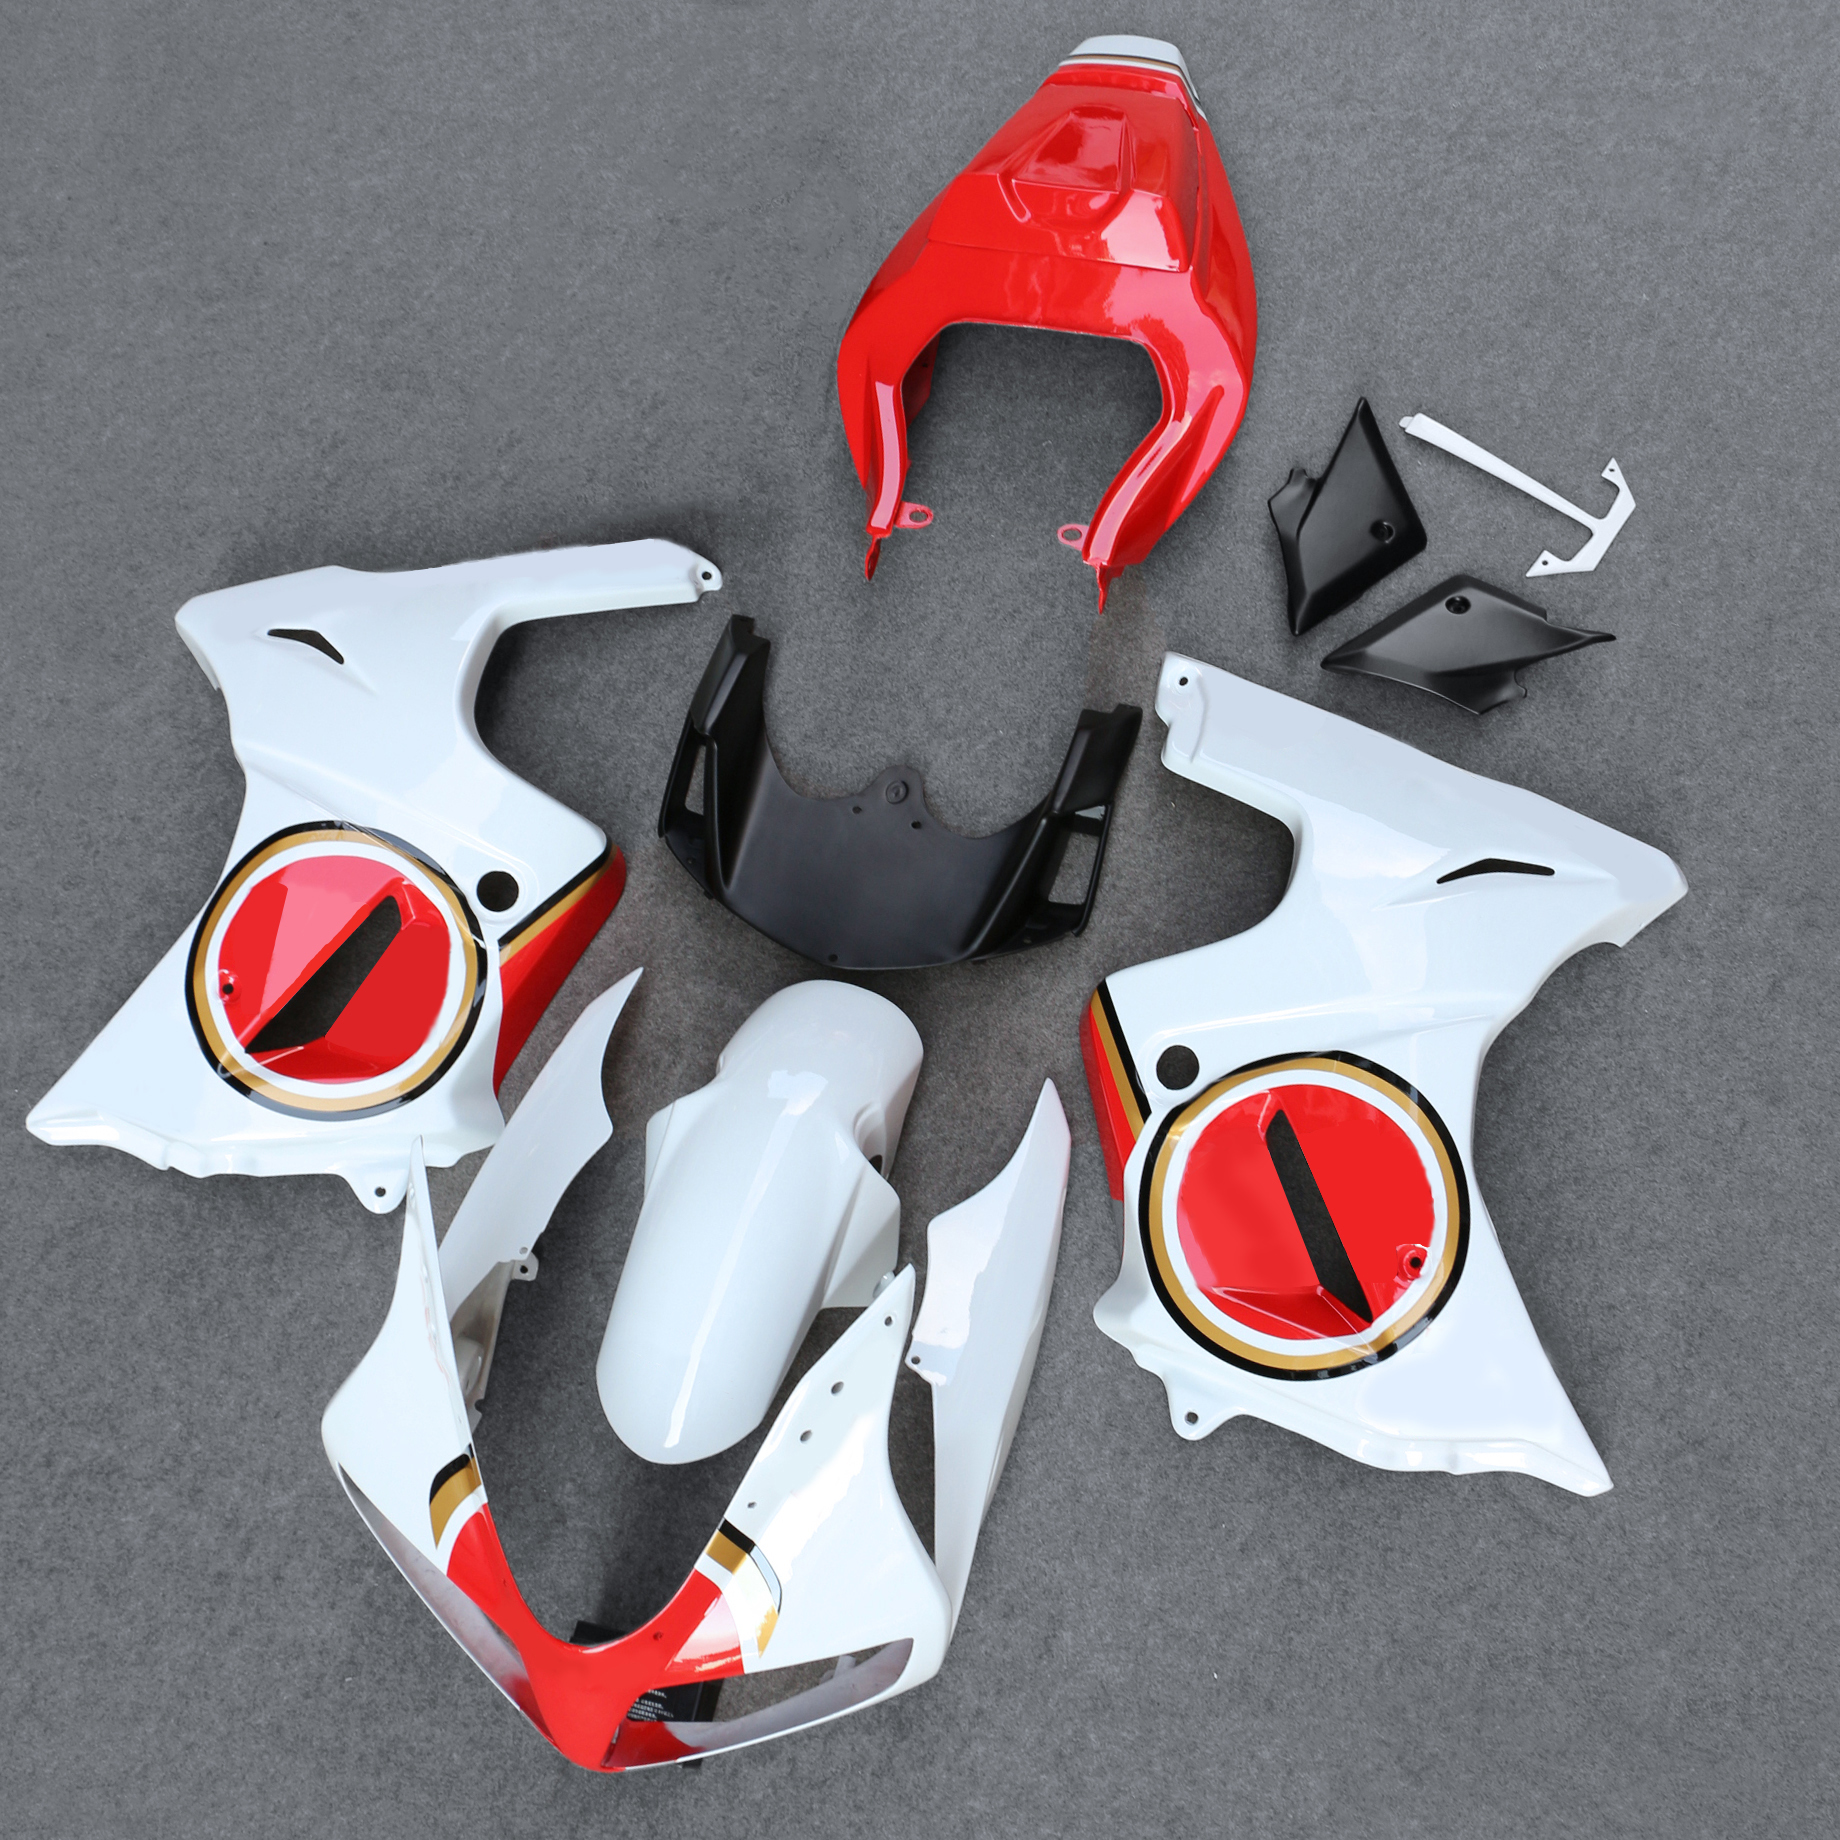 Fairing Bodywork Kit Panel Set Fit For SV650s SV 650 S 2003-2012